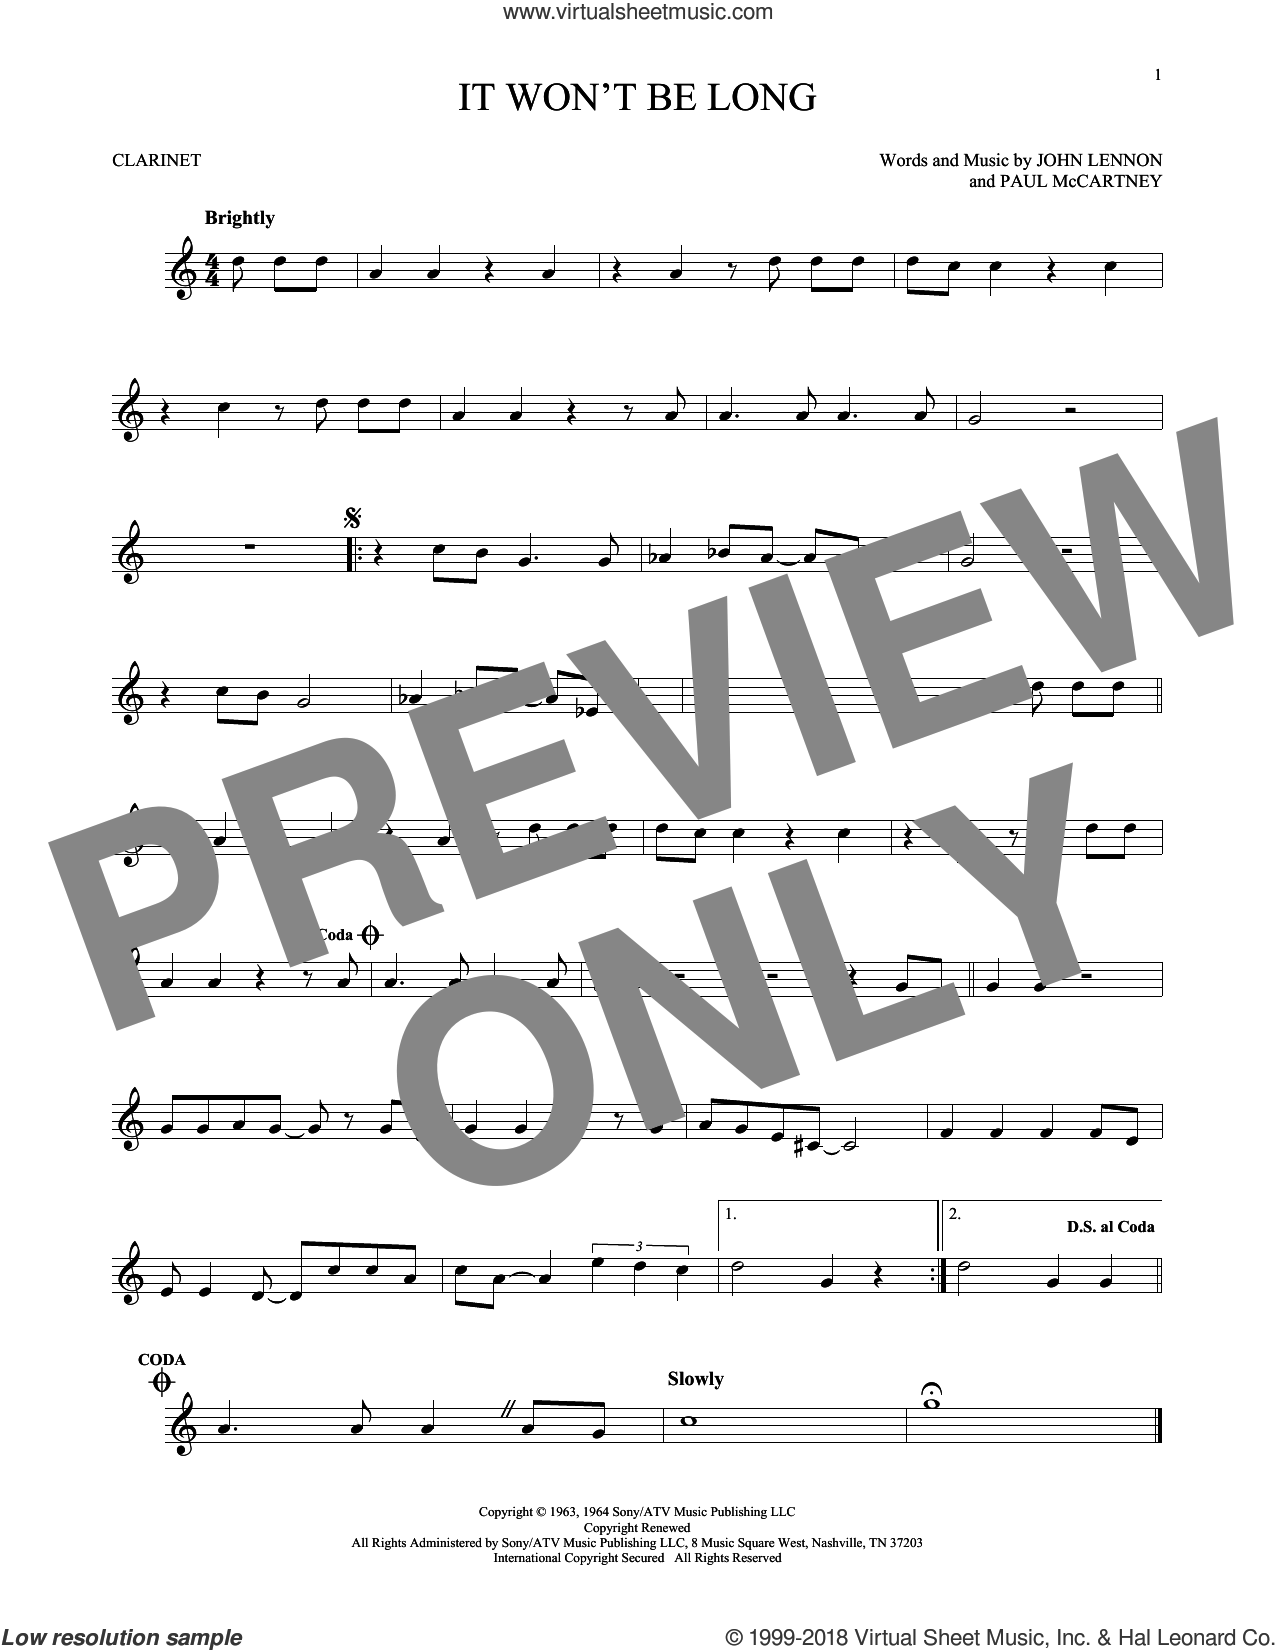 It Won't Be Long sheet music for clarinet solo by Paul McCartney